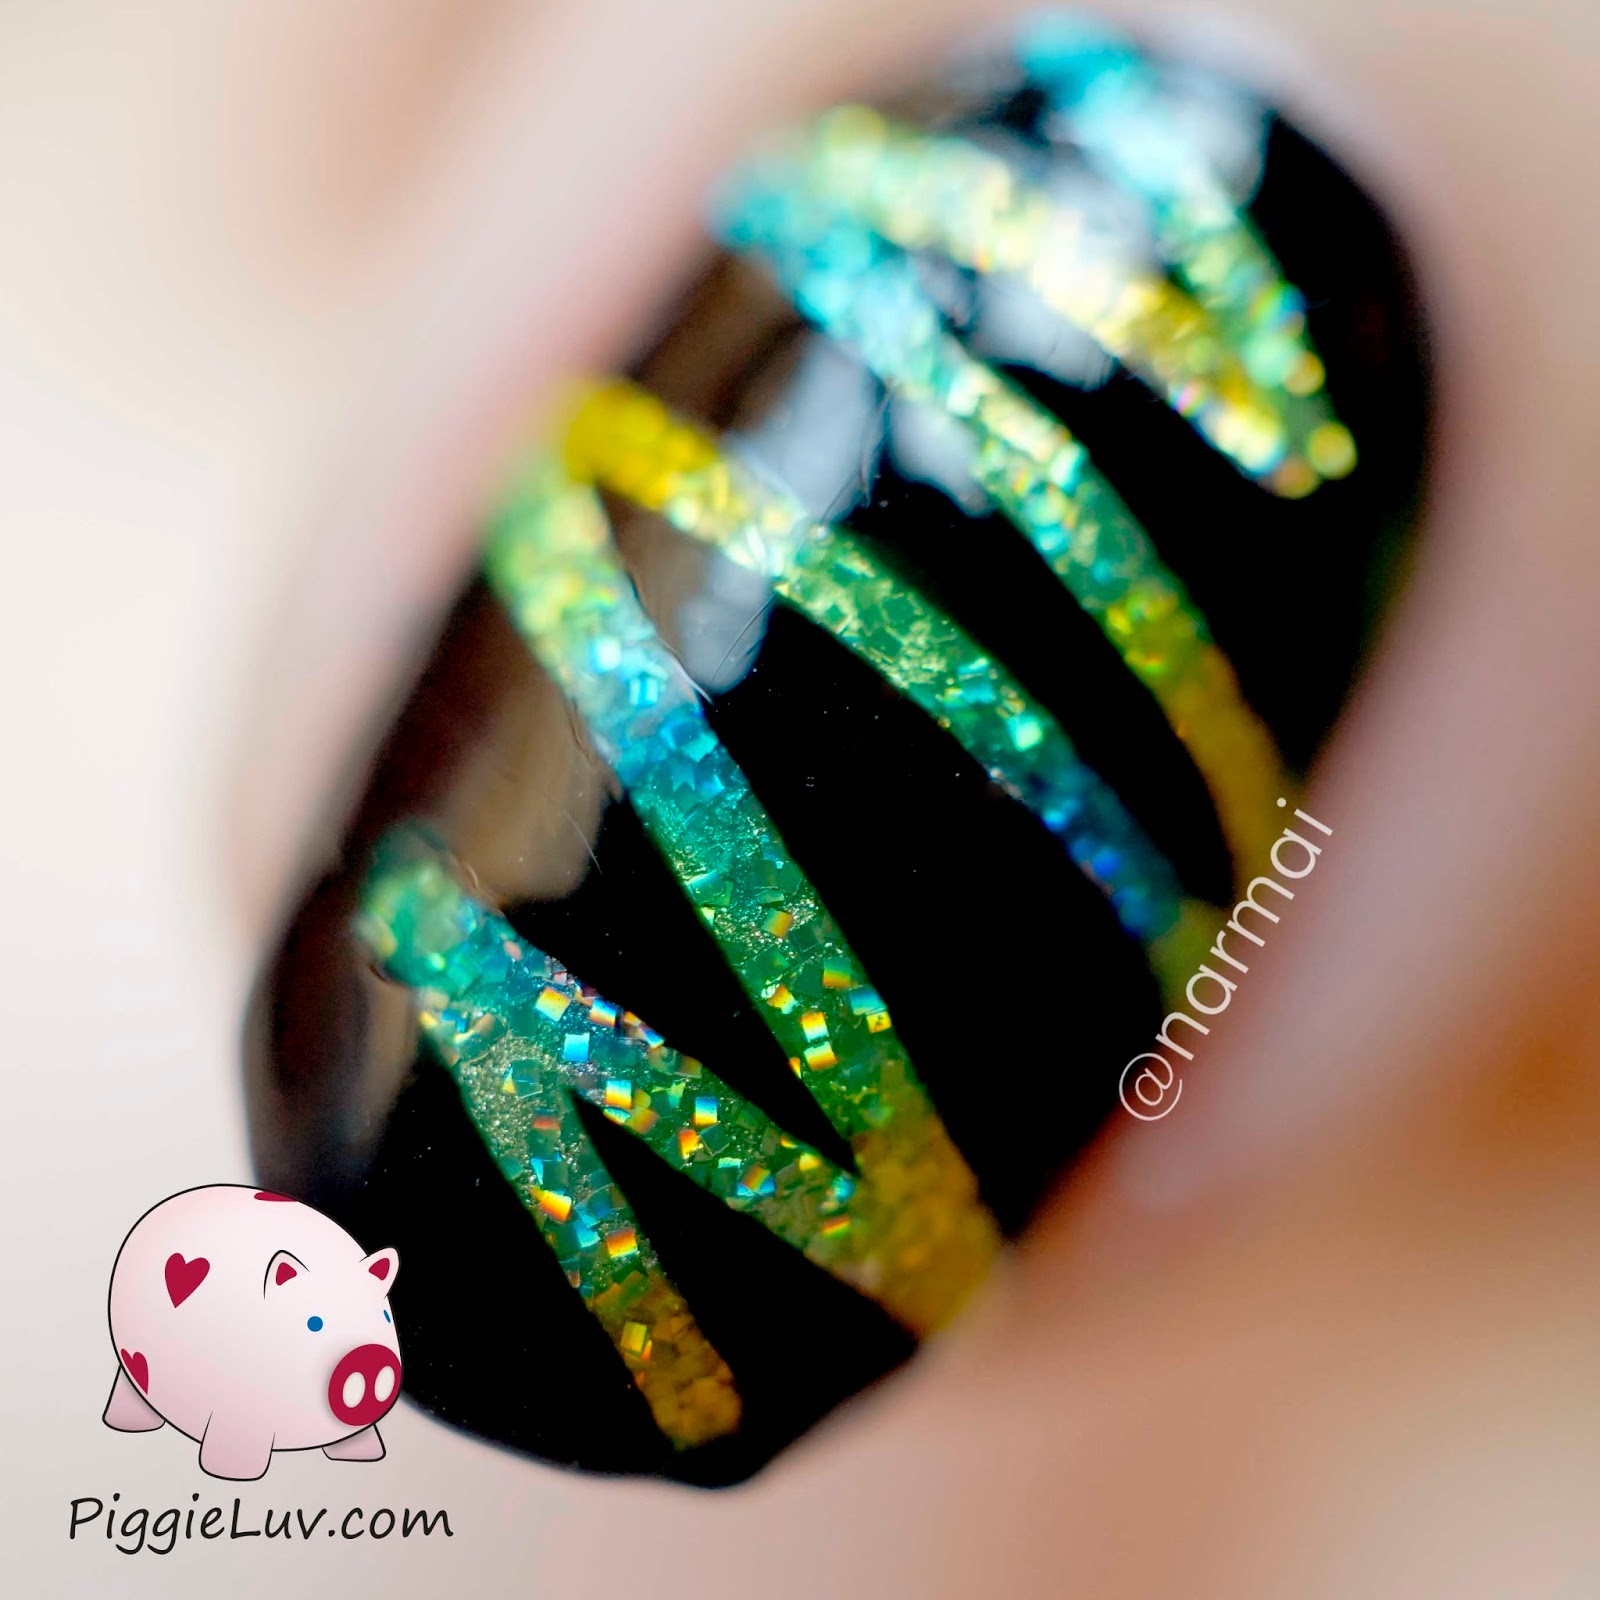 Piggieluv Glitter Lightning Nail Art With Opi Color Paints